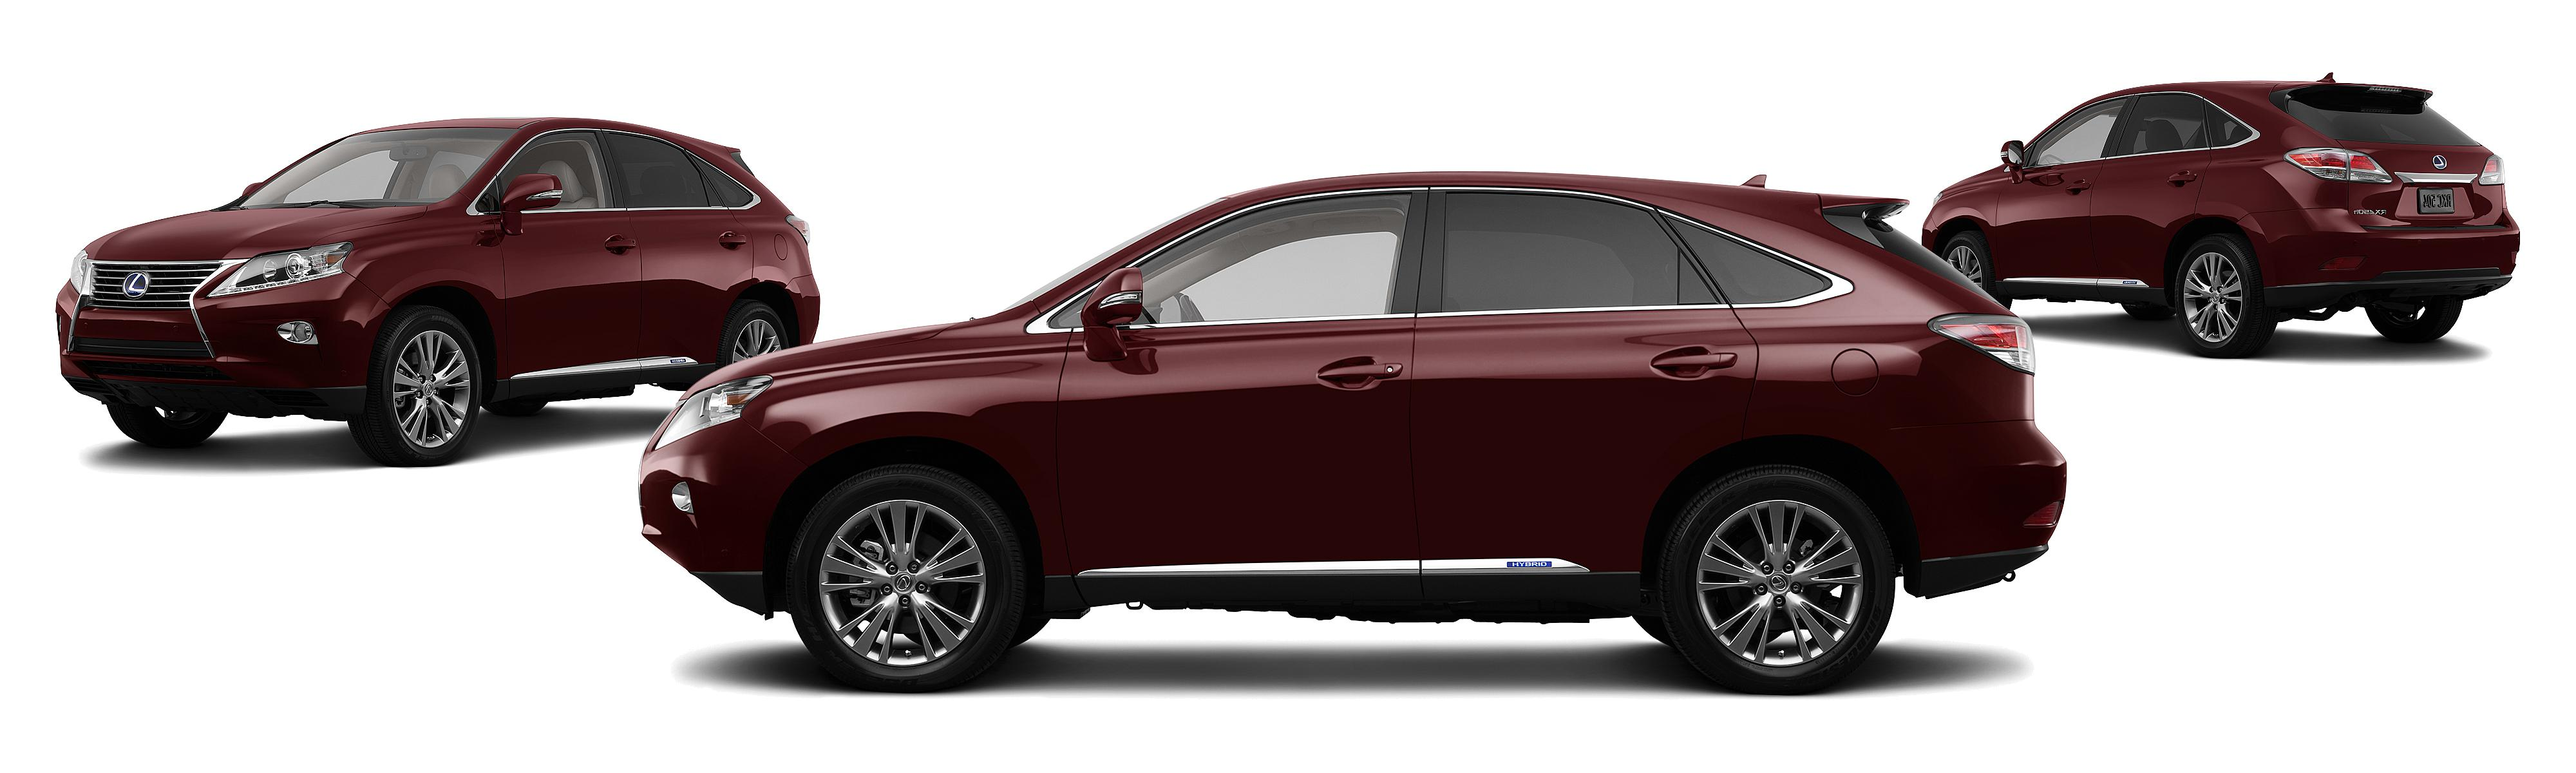 2013 Lexus RX 450h 4dr SUV Research GrooveCar